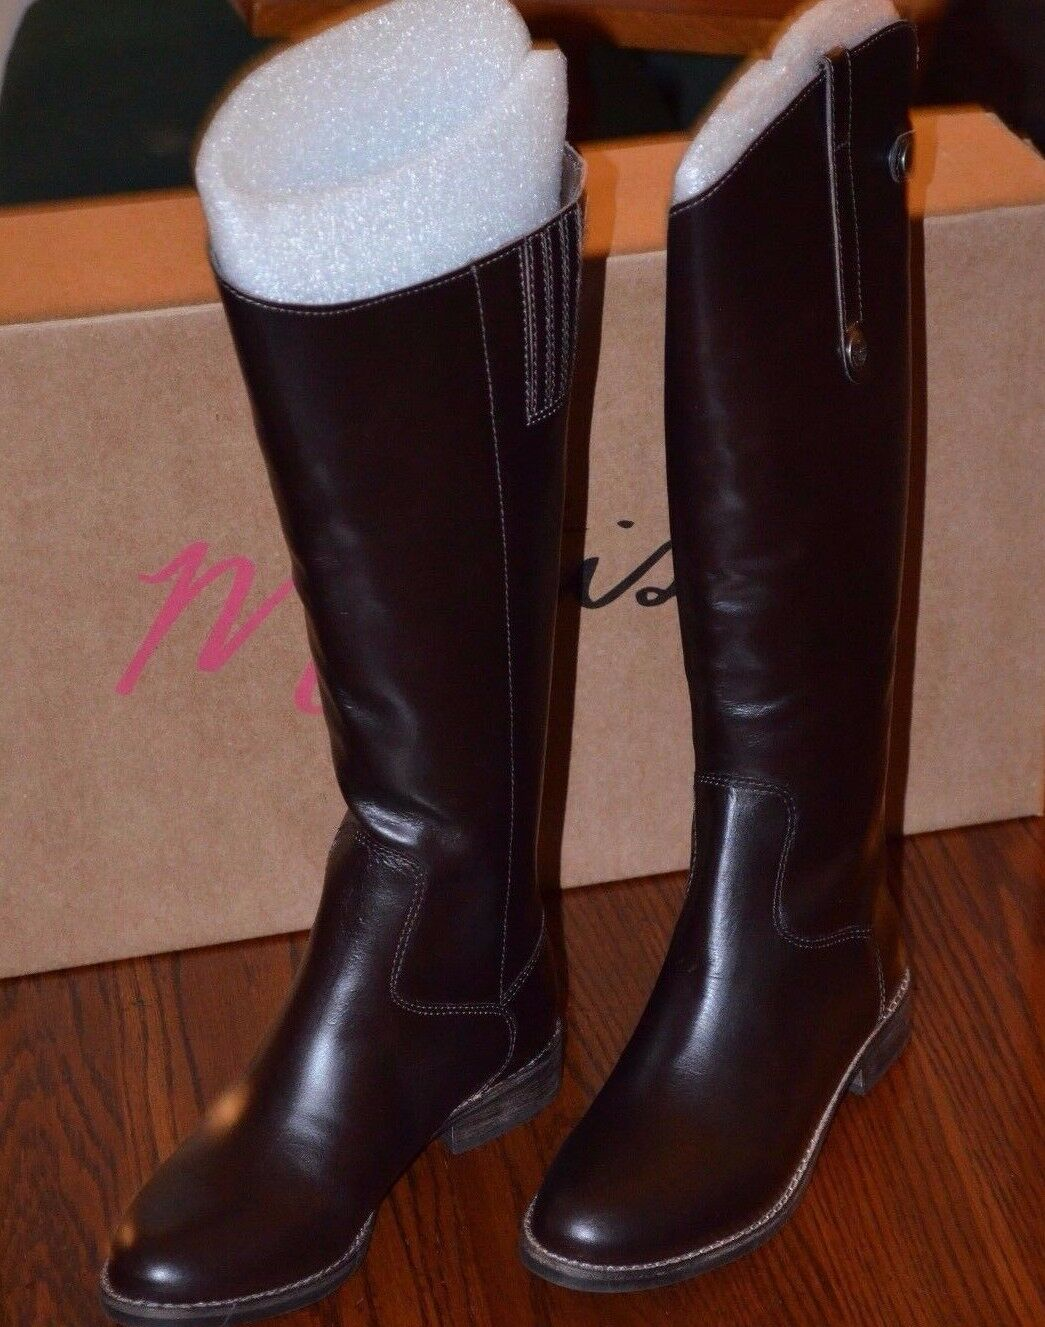 MATISSE Yorker Dark braun Brazilian Leather  Knee High Stiefel SZ 6 M MSRP  264